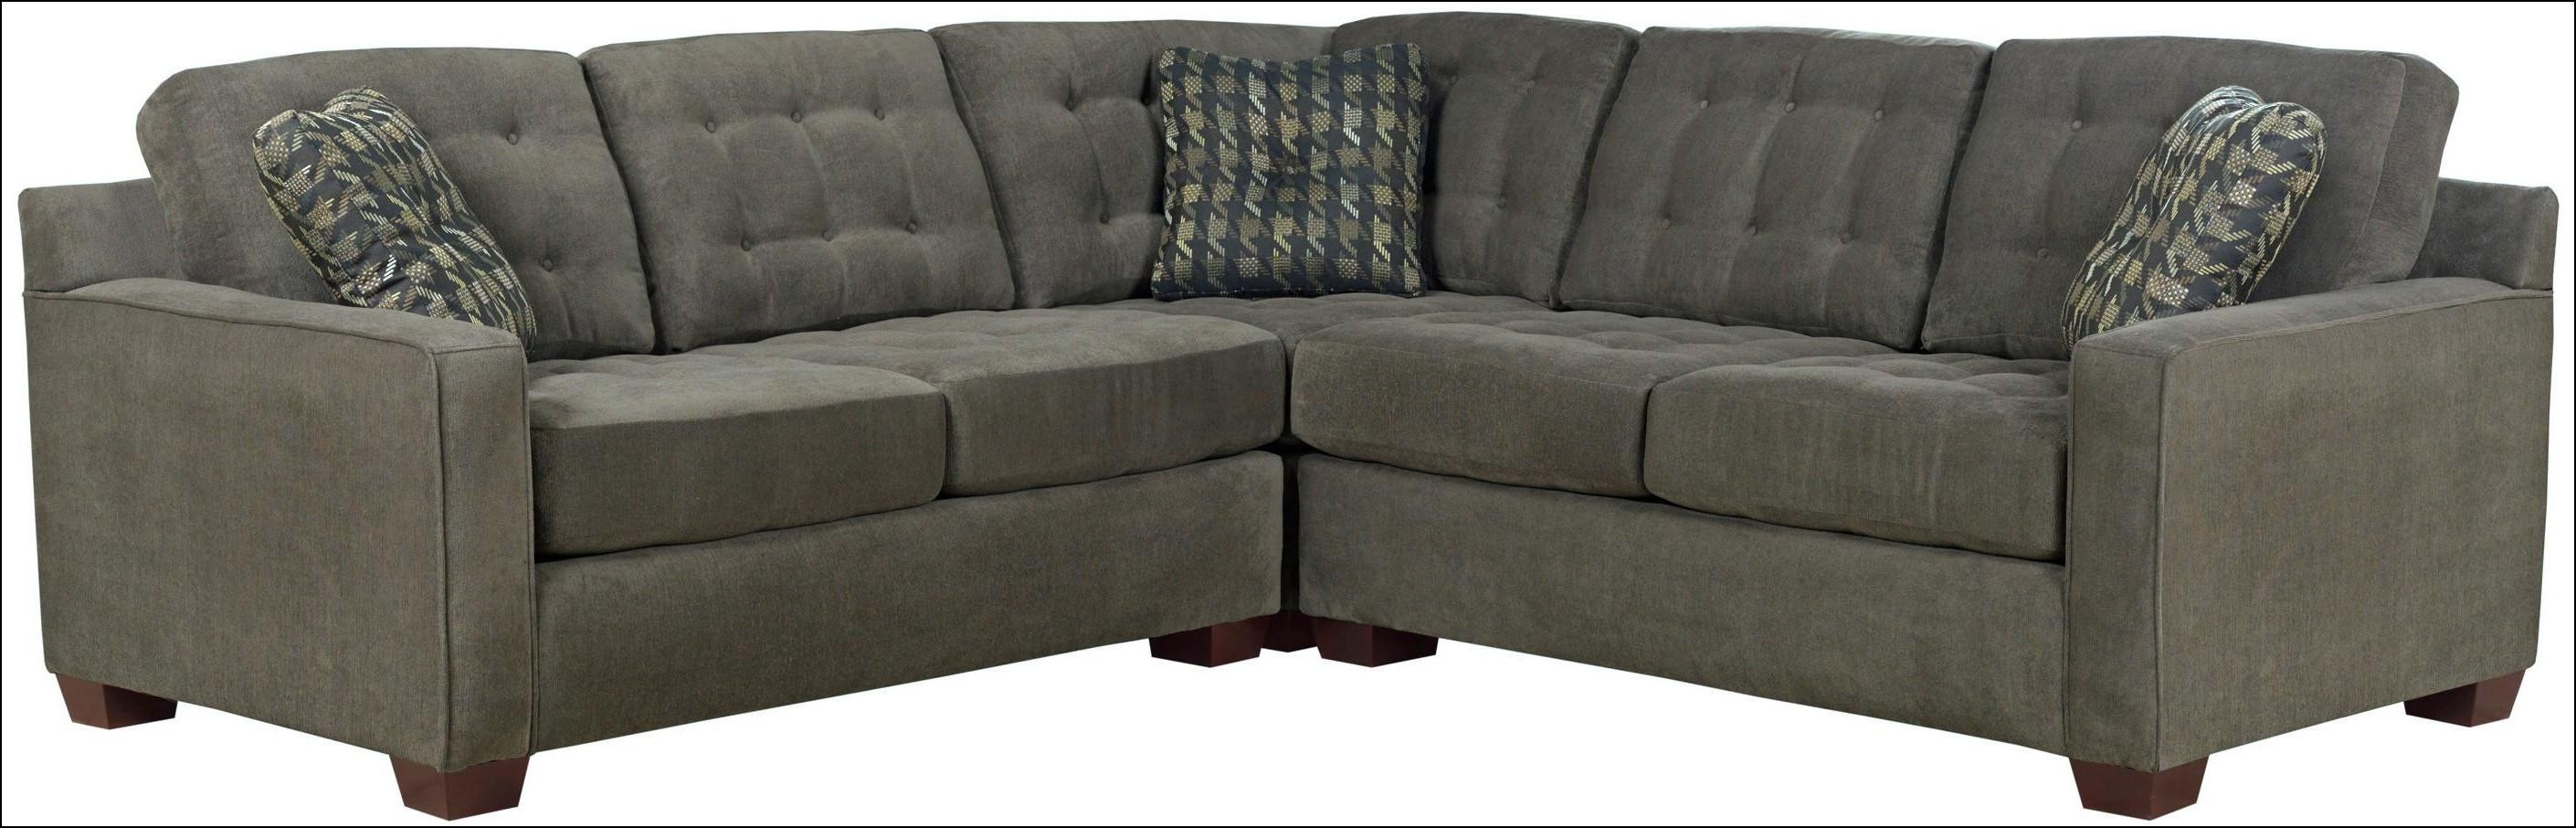 Furniture: Small Sectional Sofas For Small Spaces | Craigslist In Craigslist Sectional (Image 6 of 15)